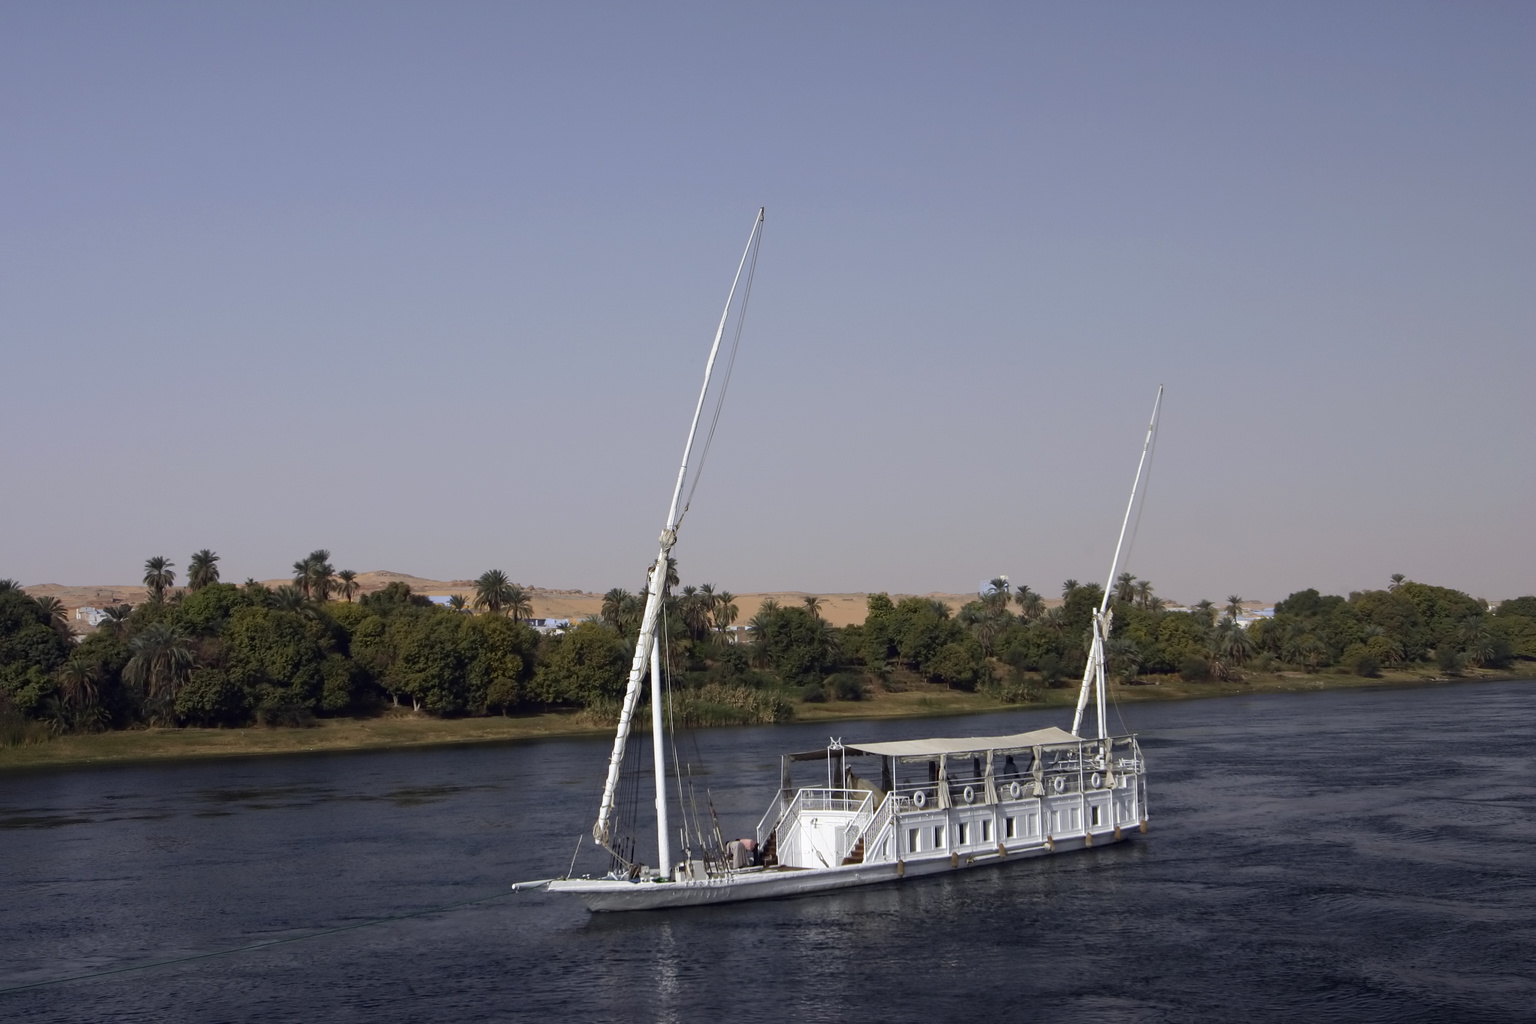 Dahabeah on the Nile